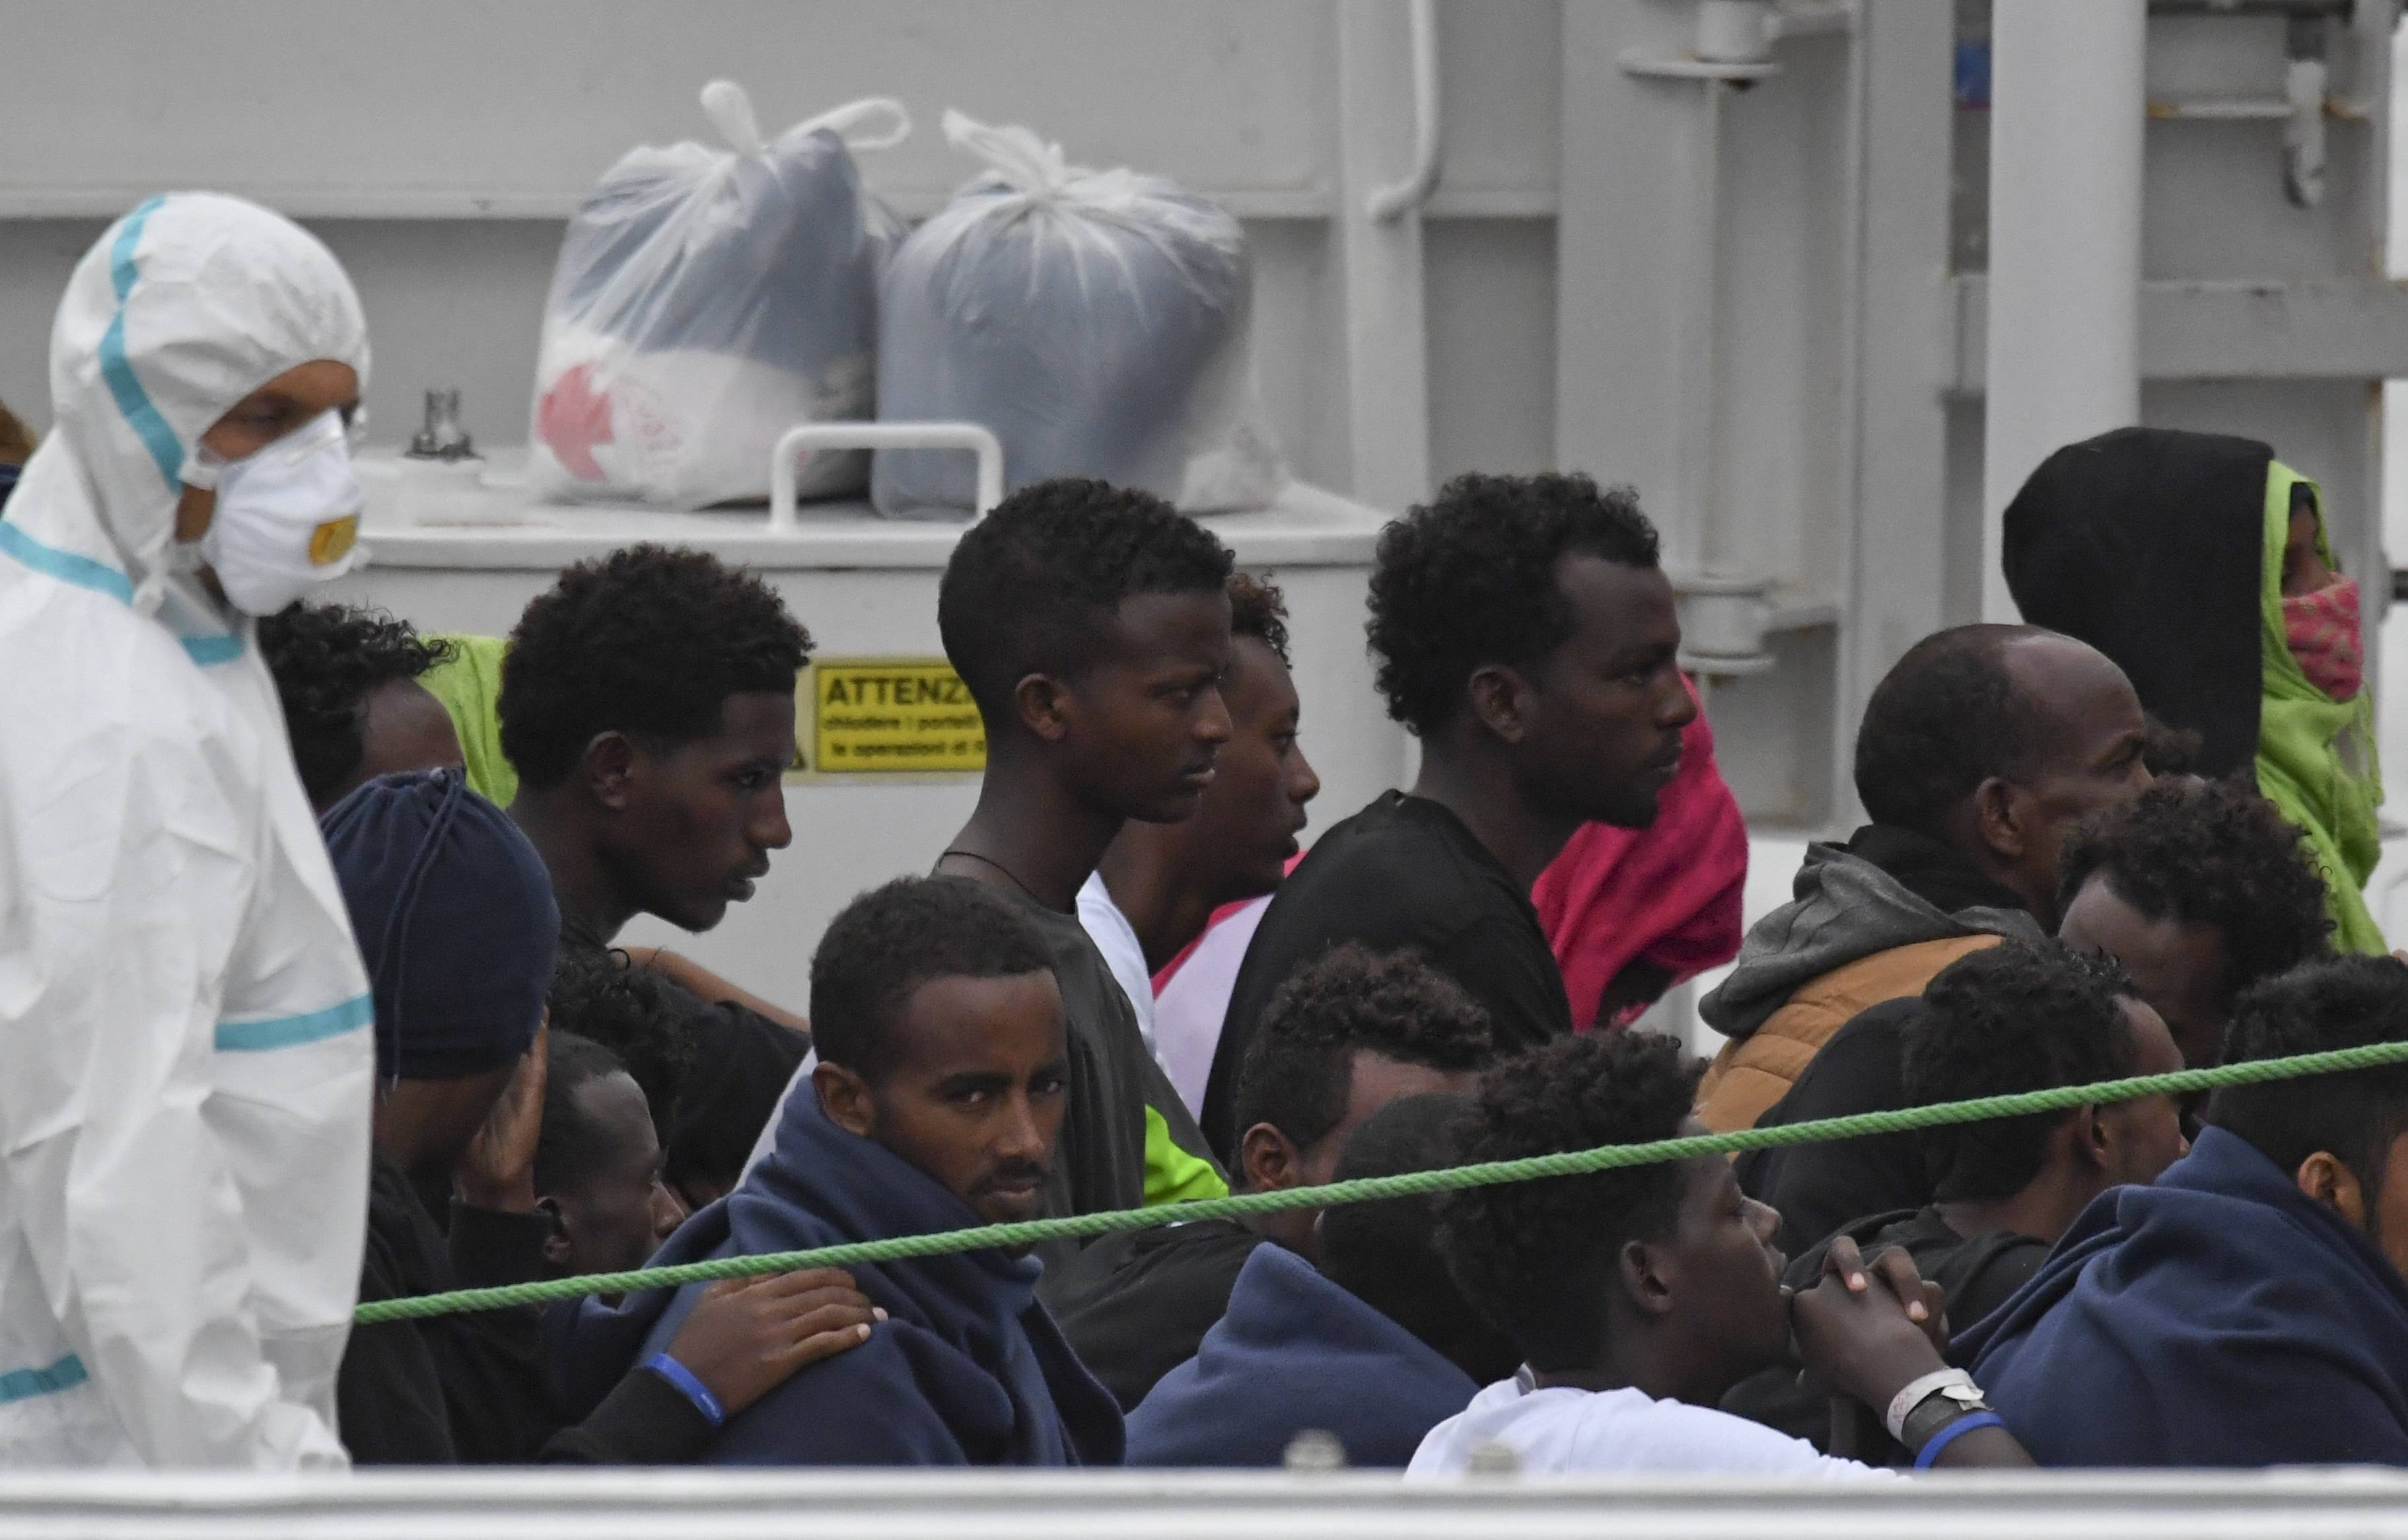 Migrants stand aboard the Italian Coast Guard ship Diciotti, moored at the Catania harbor, Tuesday, Aug. 21, 2018. One and seventy-seven migrants rescued at sea remained aboard the Italian Coast Guard ship Diciotti Tuesday morning as the Italian government refused to let them disembark in the port of Catania until other European countries agree to take them.The Diciotti arrived in the port of Catania late Monday night after spending days off the Italian coast as the Italian and Maltese government bickered over where they will be taken. (AP Photo/Salvatore Cavalli)